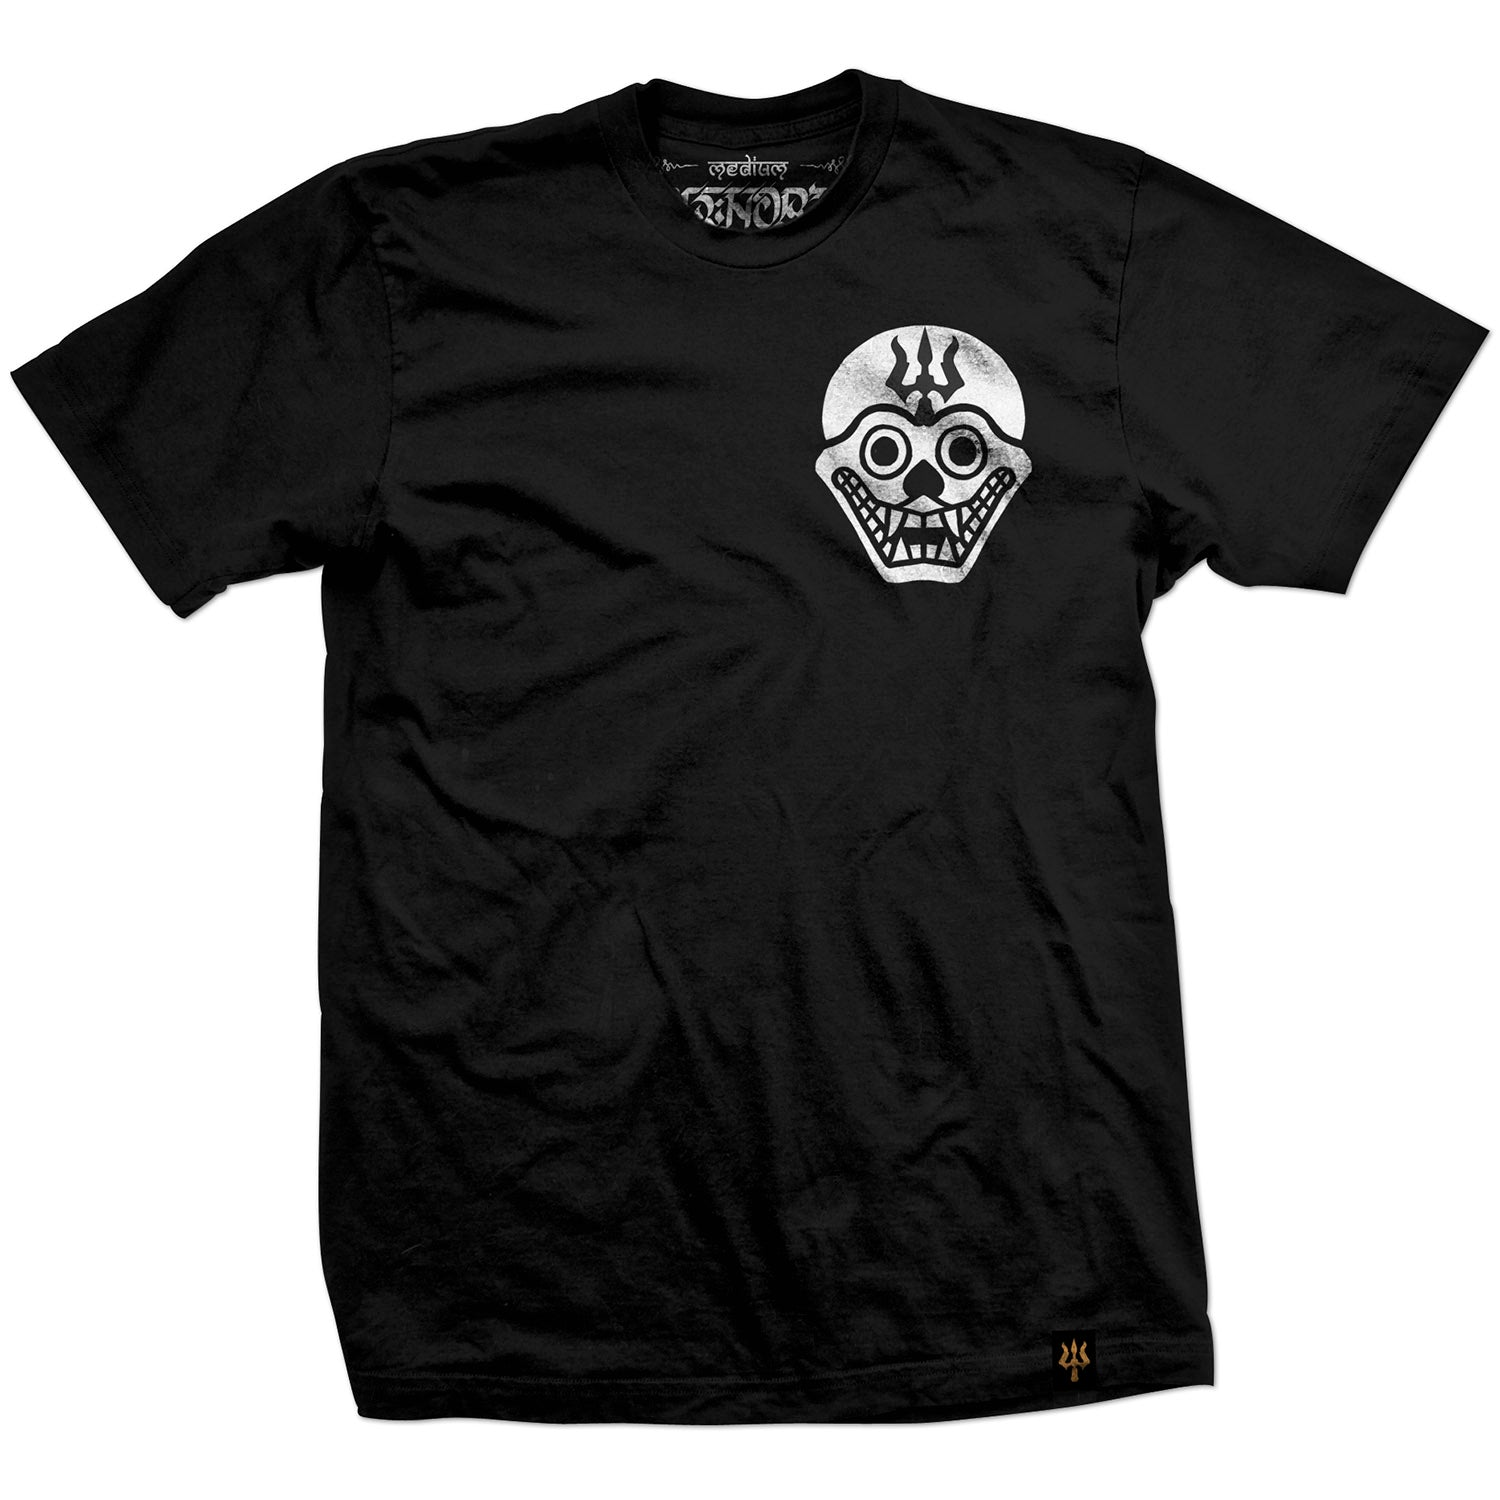 T-shirt: 'Practice Dying' Black